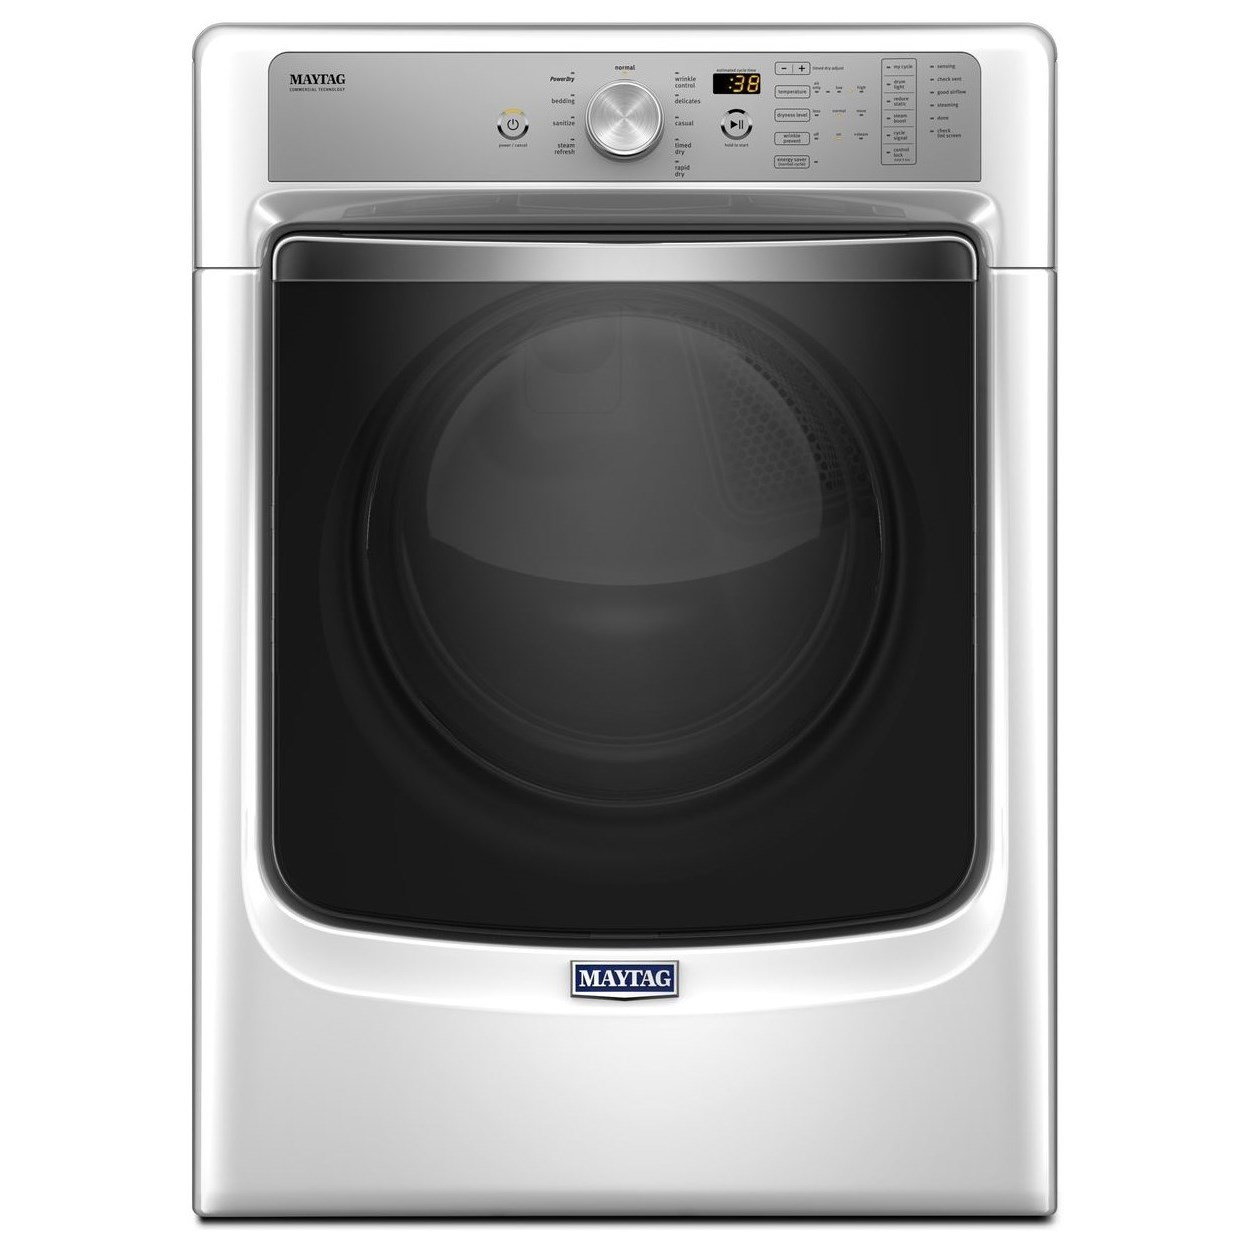 Maytag Front Load Electric Dryers 7.4 Cu. Ft Large Capacity Dryer - Item Number: MED8200FW